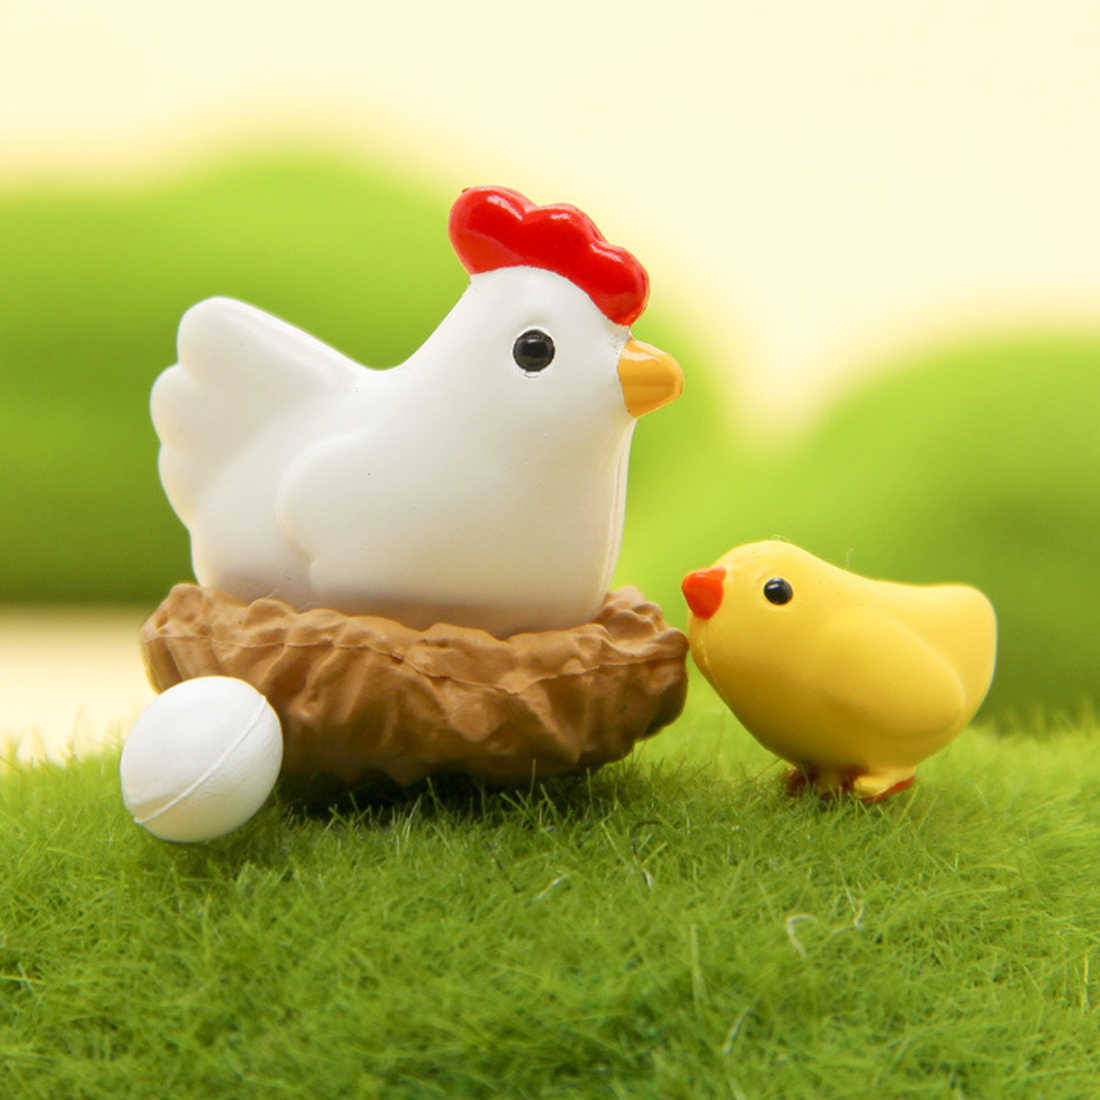 Micro Chicken Eggs and Mini Flatback Resine Craft Figurines Miniature Garden Decor Bonsai Terrarium Supplies Micro Landscape